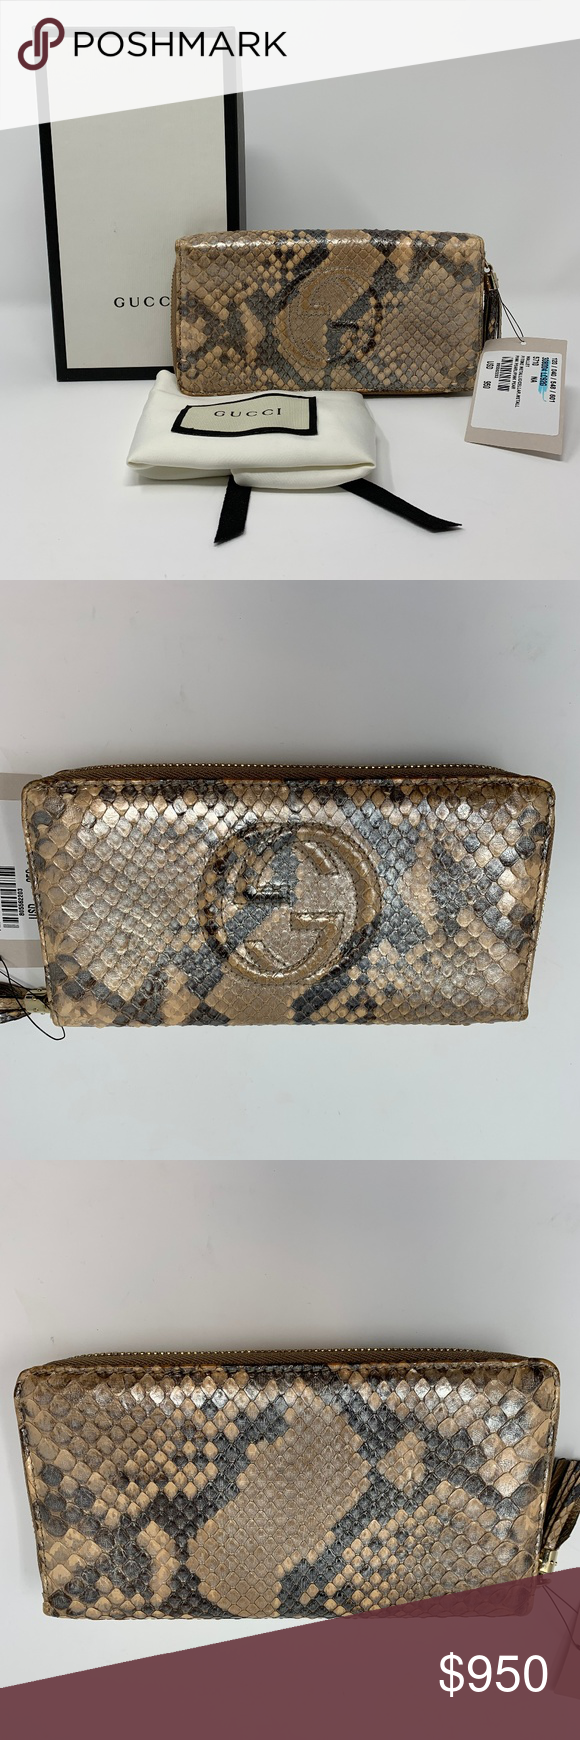 bbc5e63d3e95 Gucci Python Snack Pink Metallic Pearl Zip Wallet Overall Condition is  Brand new with Tag Attached